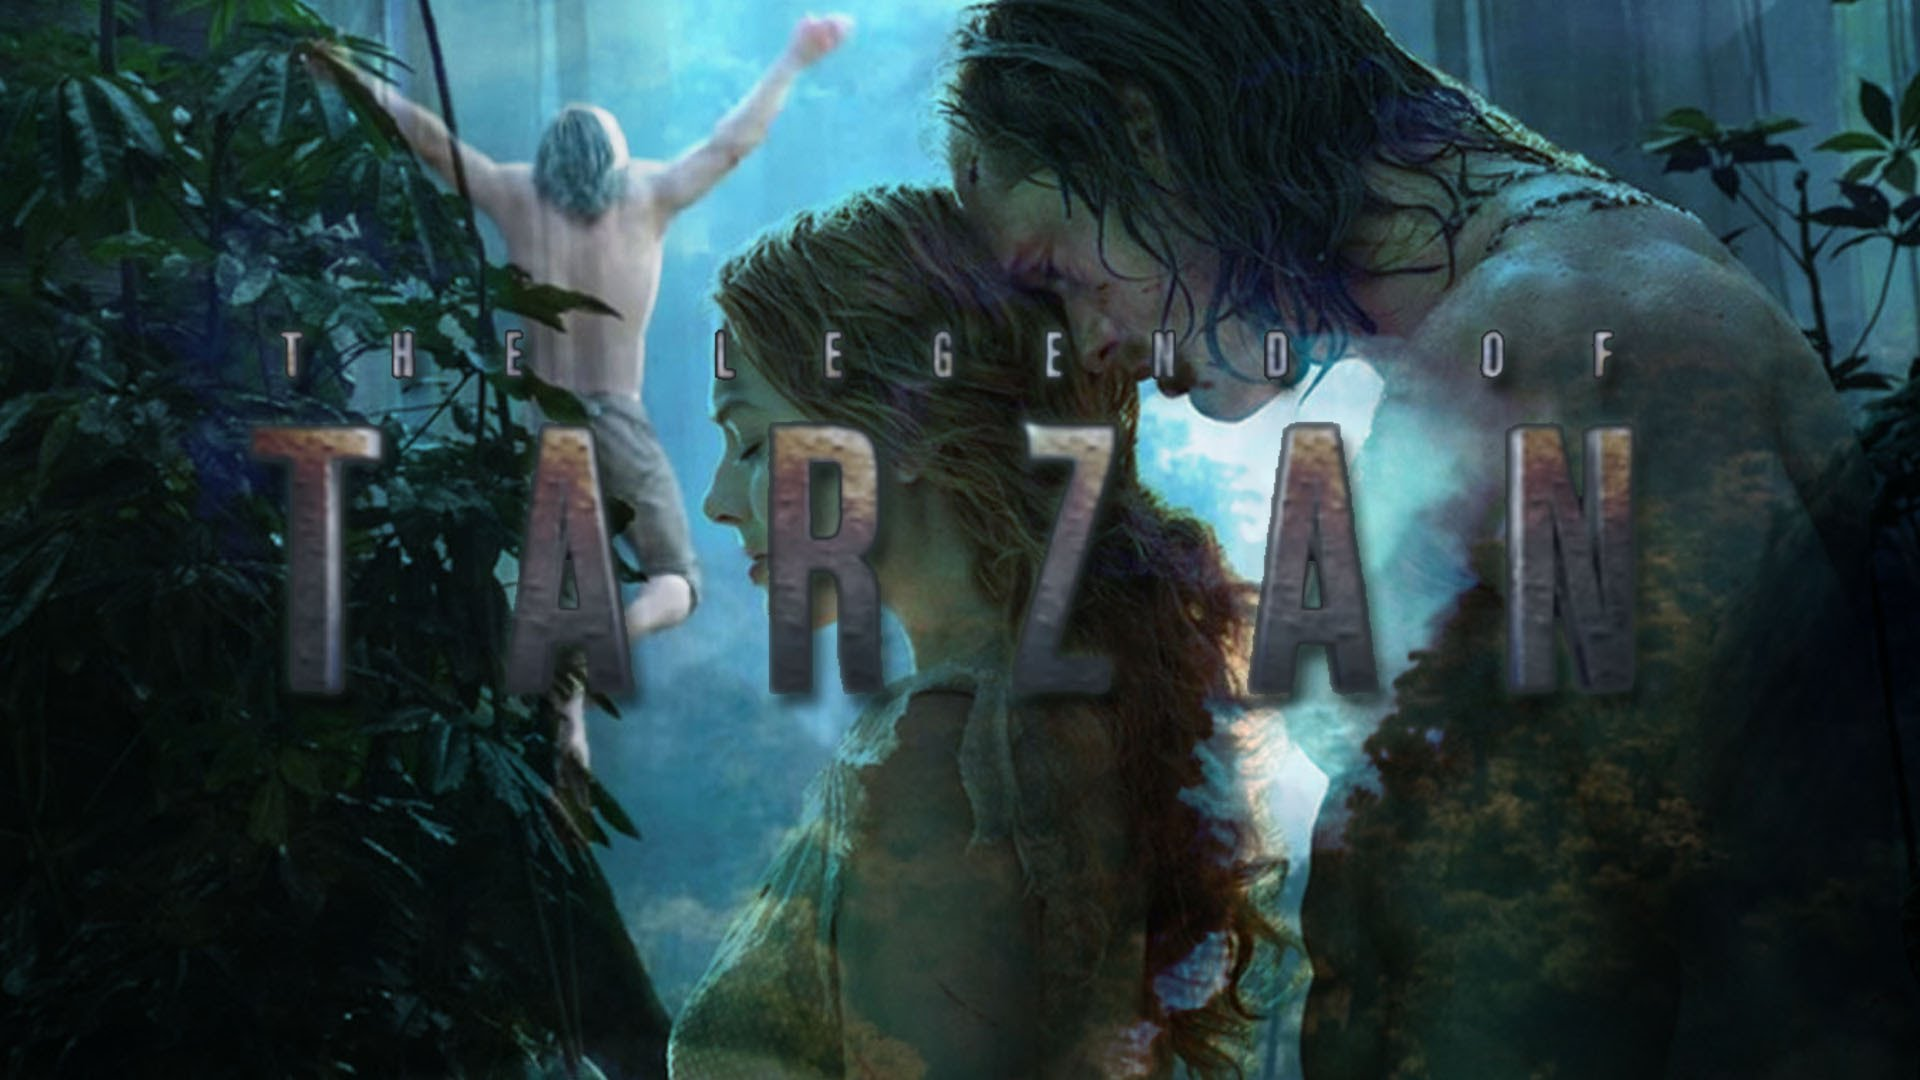 Movie Trailers Images The Legend Of Tarzan Hd Wallpaper Hd